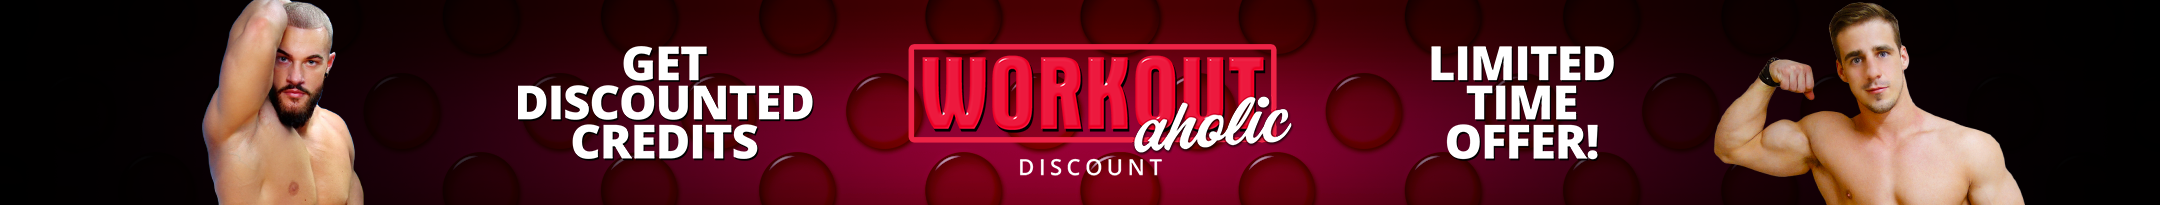 Workout-aholic Discount Promo